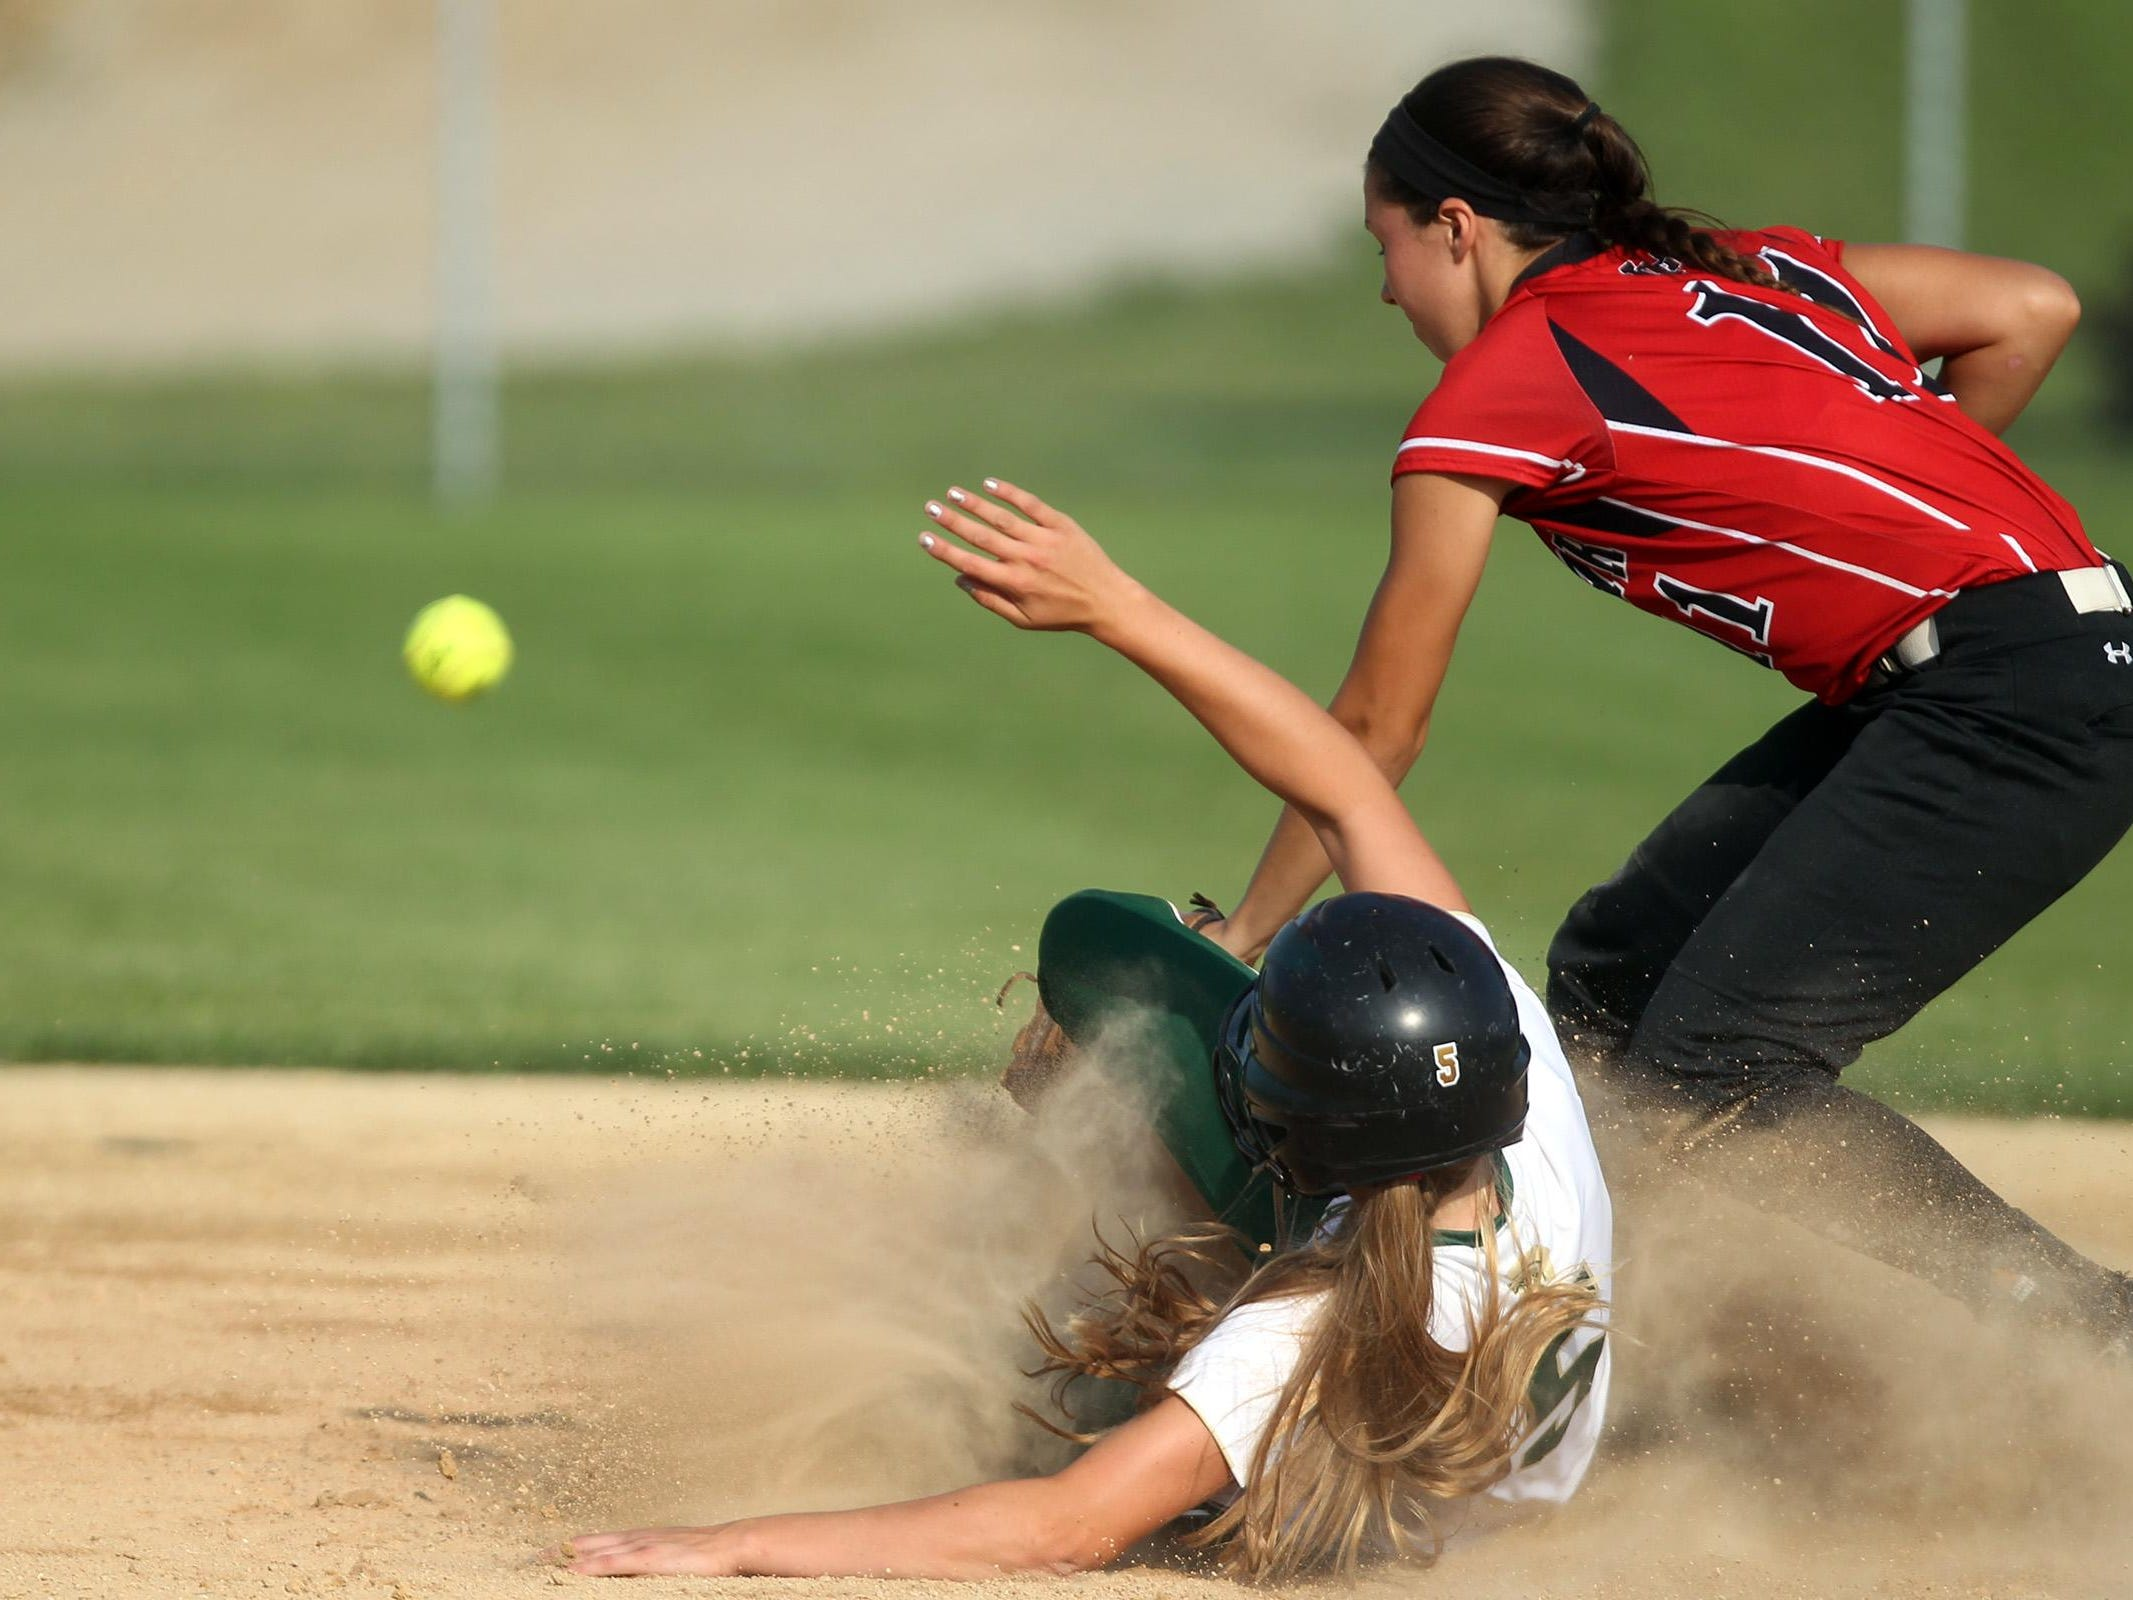 West High's Grace Tafolla safely slides to second base during the Women of Troy's game against Linn-Mar on Thursday, July 9, 2015. David Scrivner / Iowa City Press-Citizen